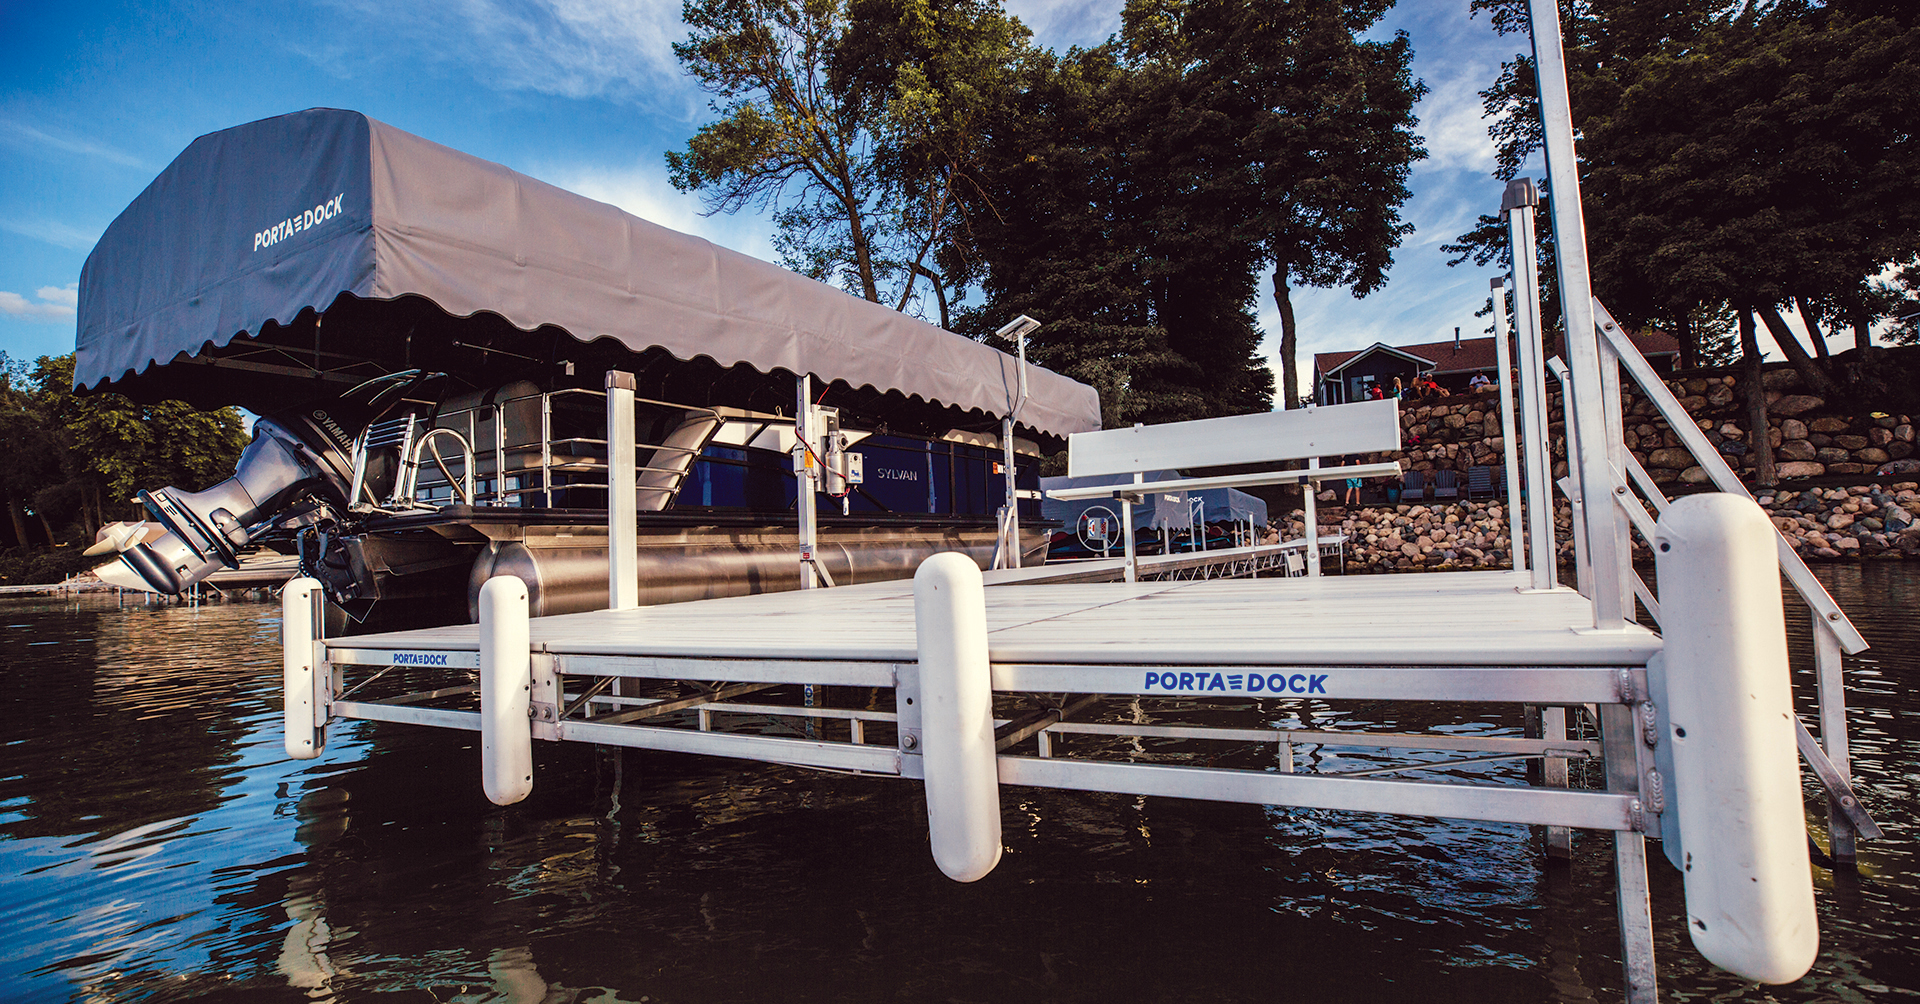 Porta-Dock roll-in dock in the lake with boat lift and canopy